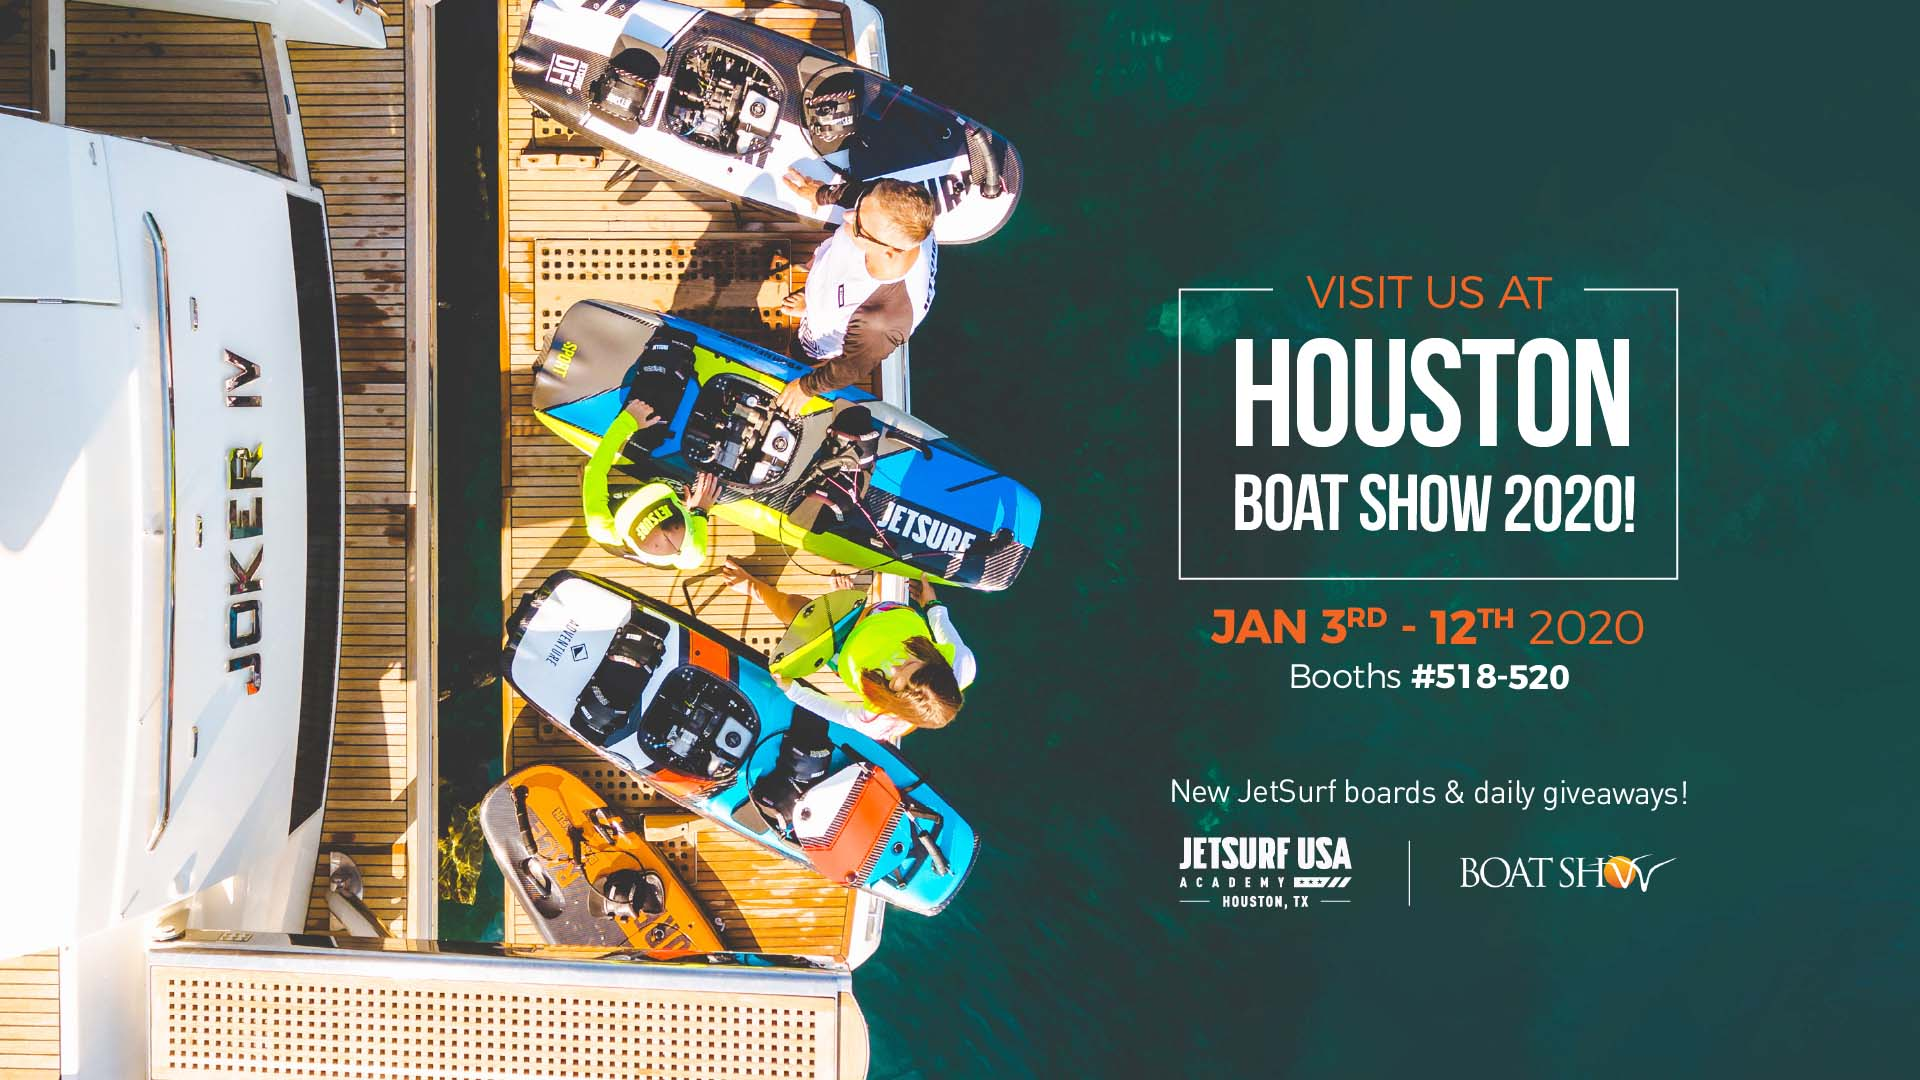 JetSurf Houston at Houston Boat Show 2020